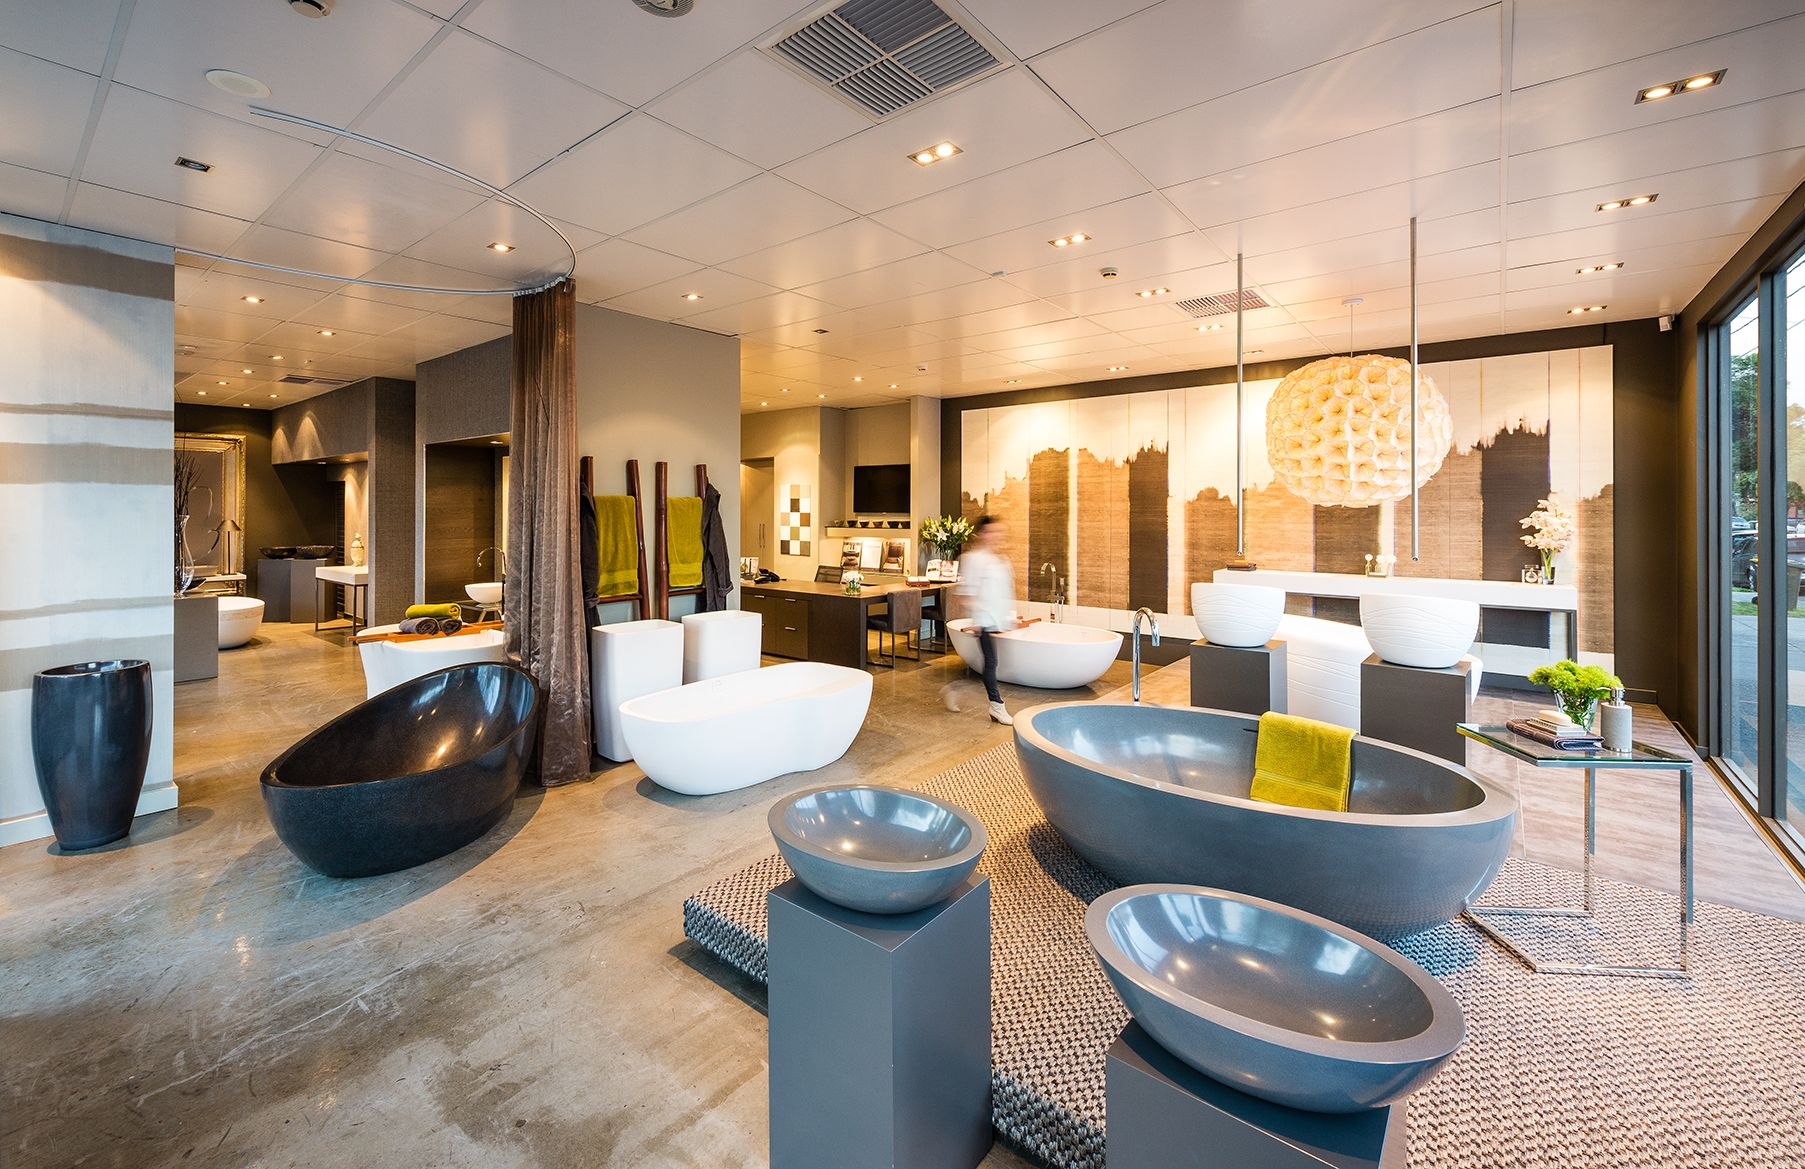 Bathroom trends for 2014 and beyond | Thiết kế, Showroom ...